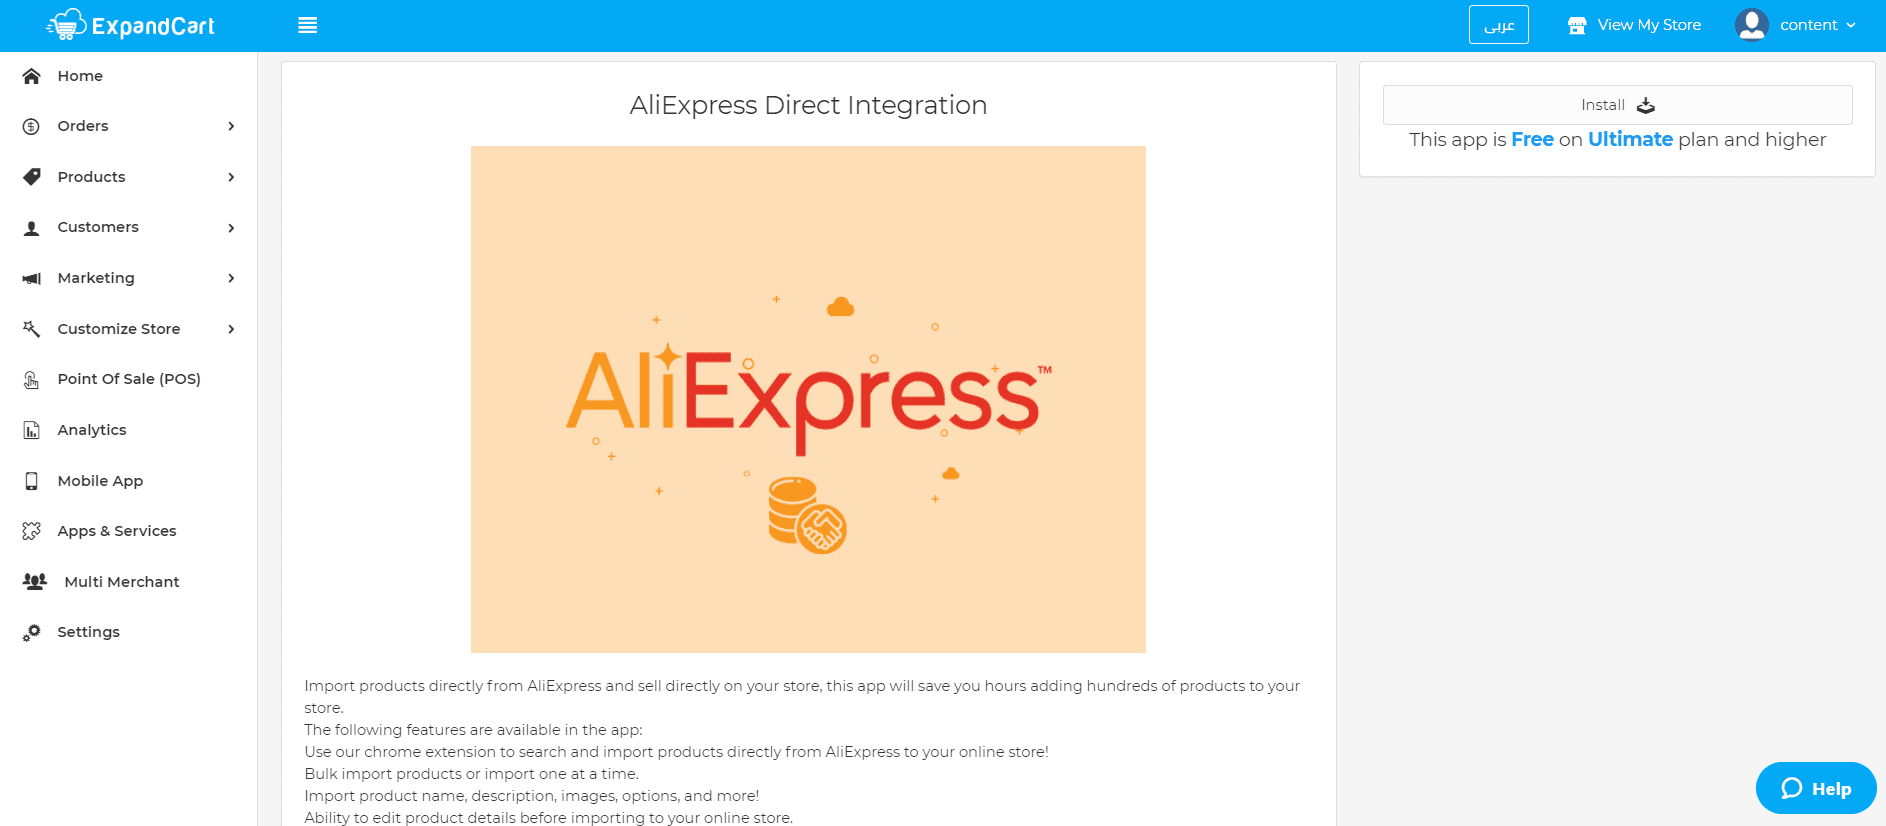 How Does Dropshipping Work on ExpandCart using AliExpress